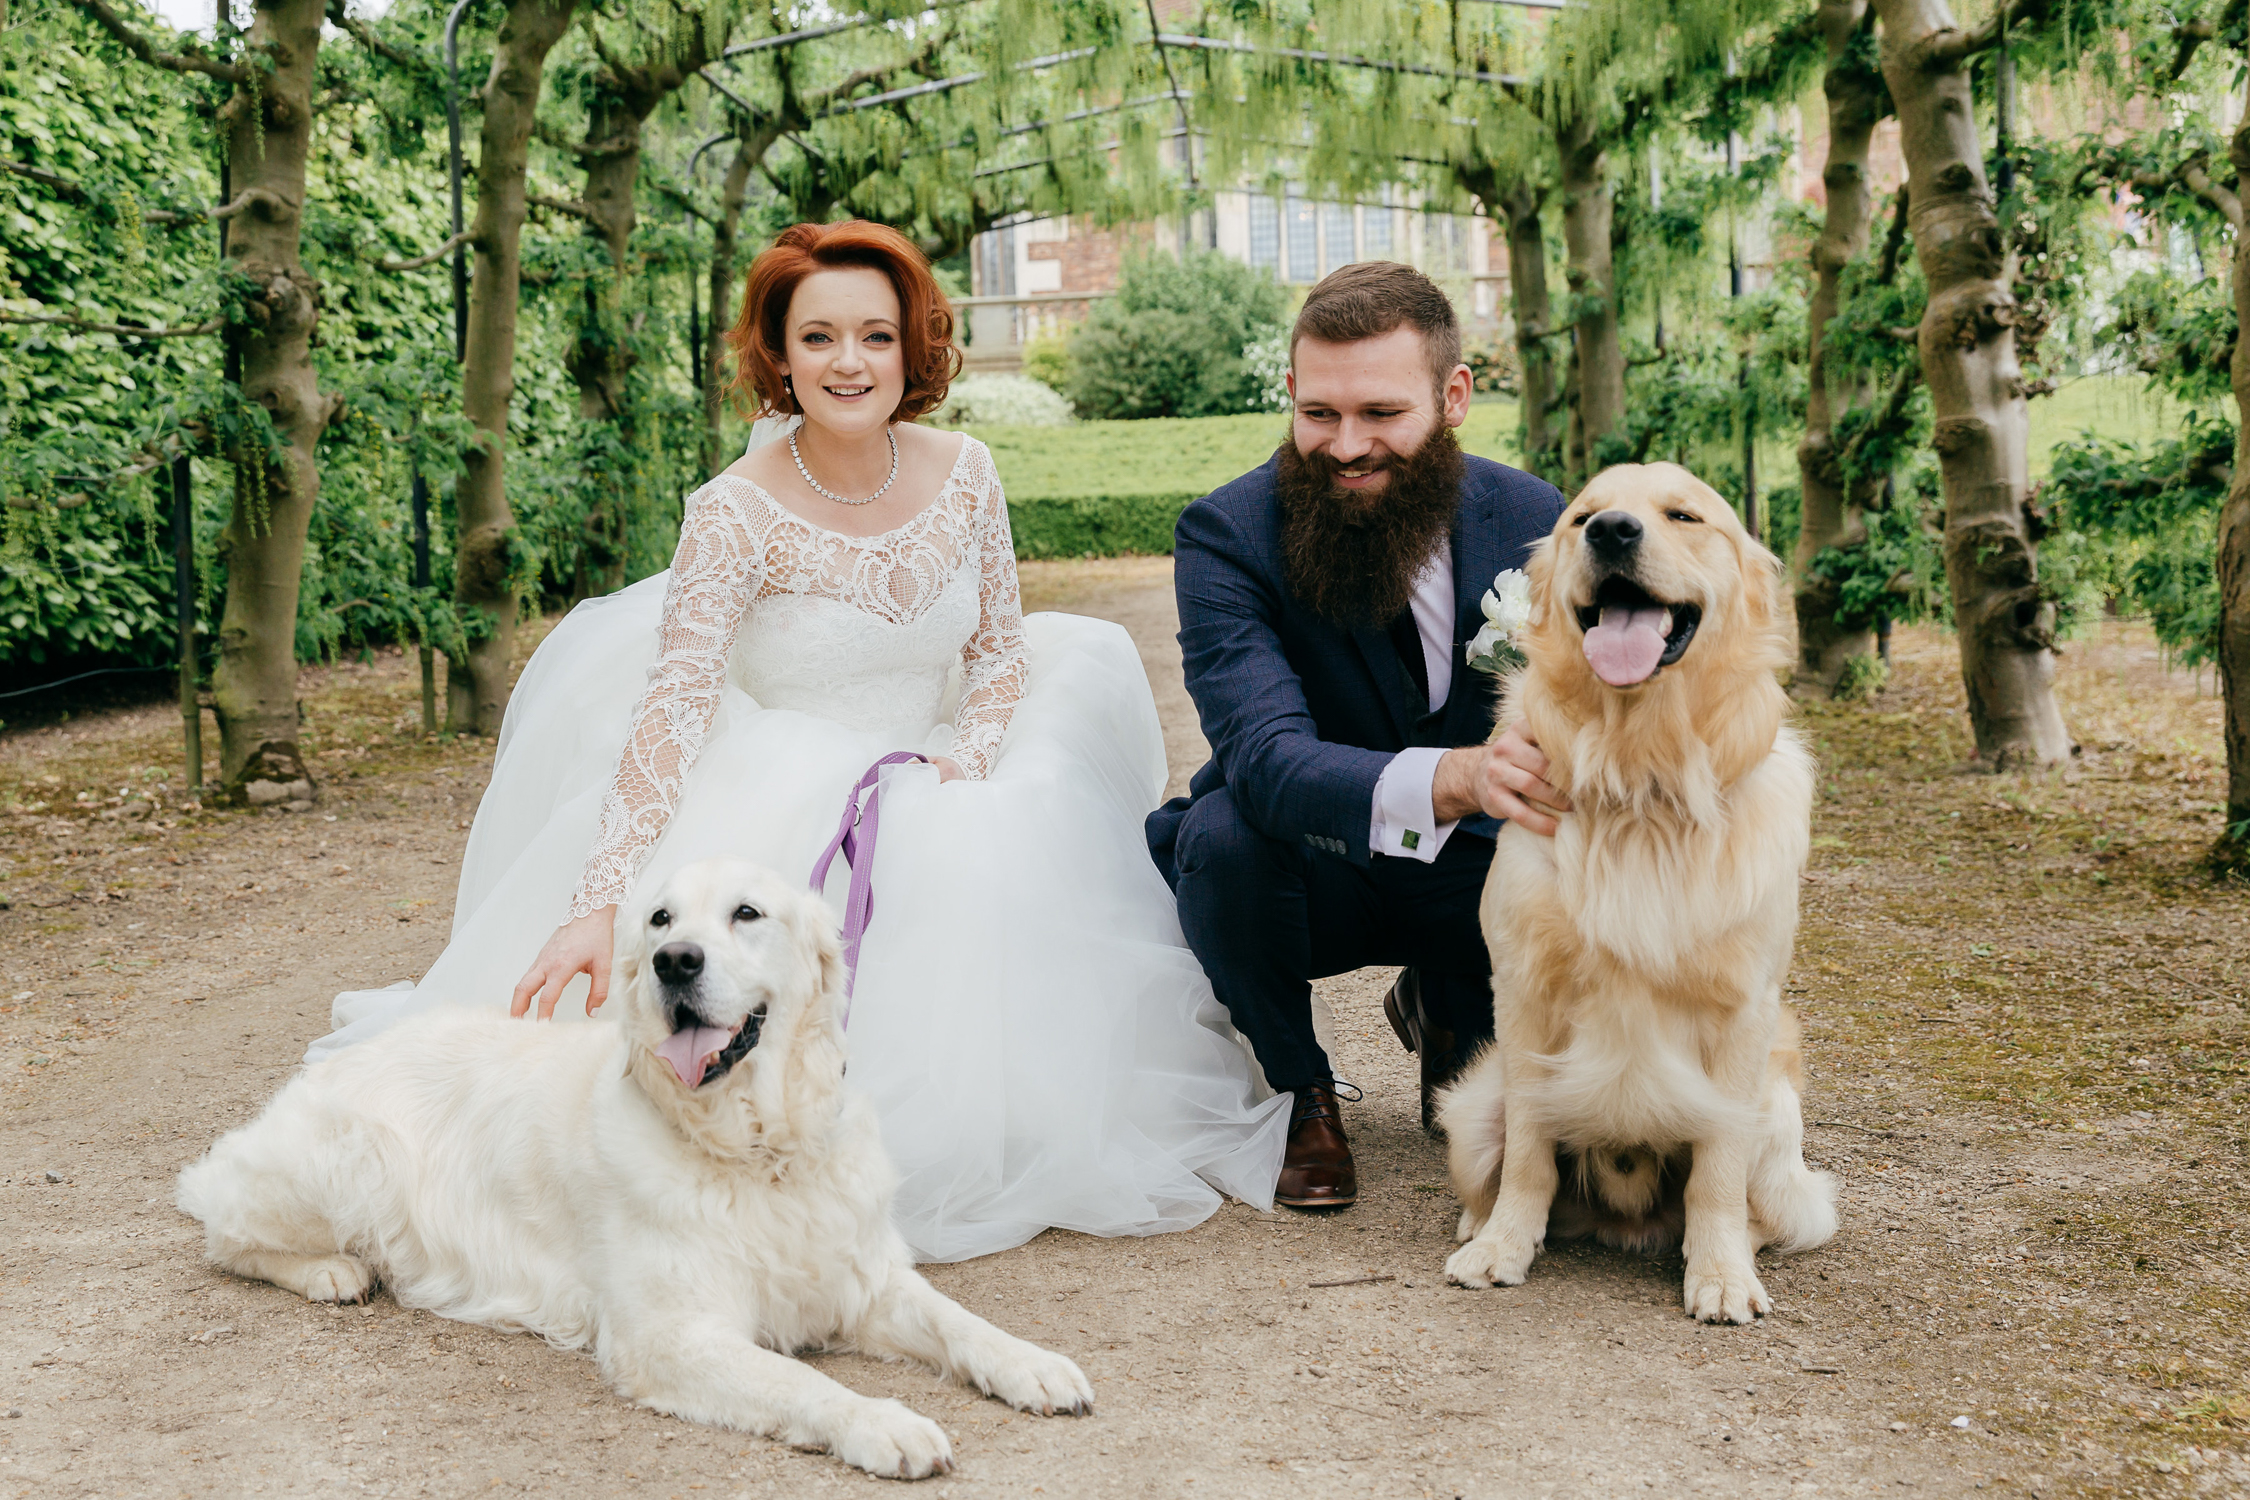 bride and groom with pet dogs on wedding day